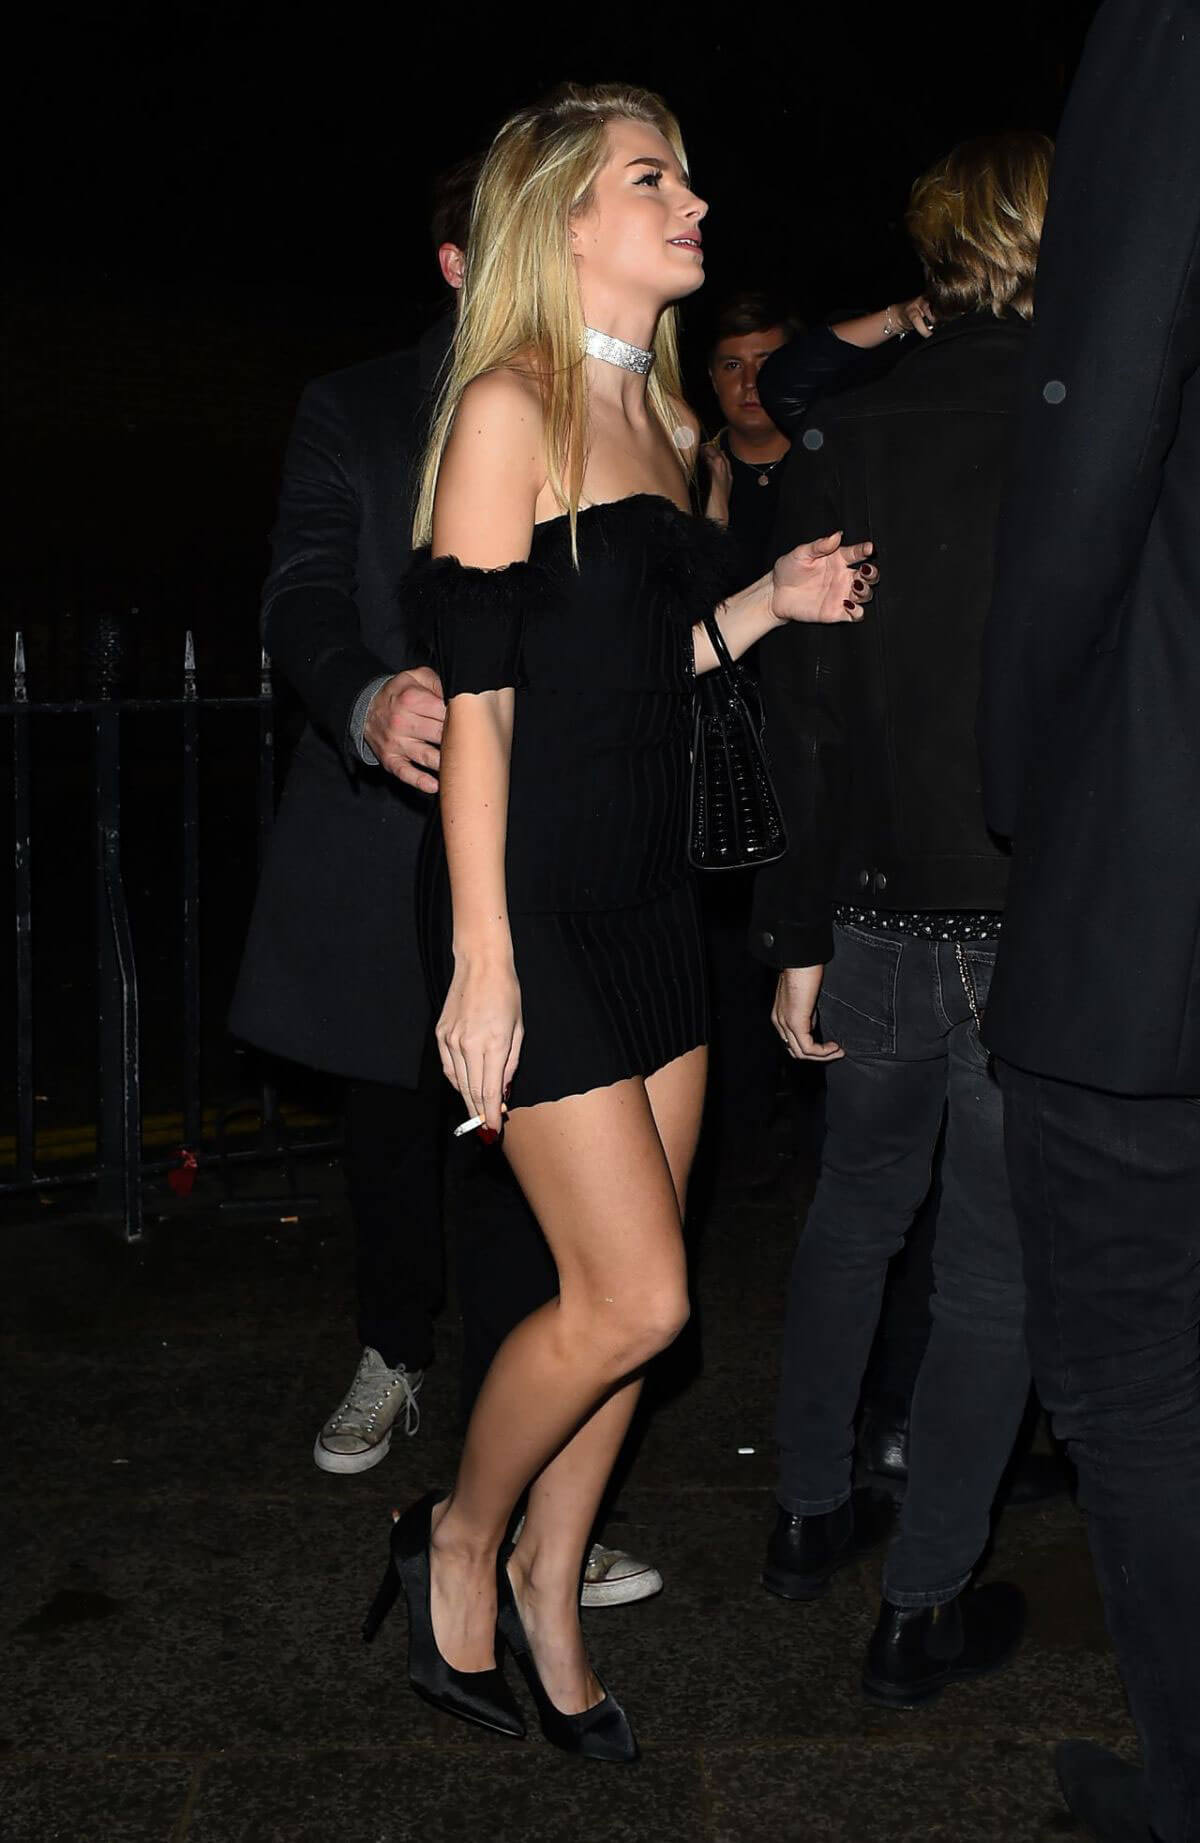 Lottie Moss Stills at Kensington Nightclub in London Images